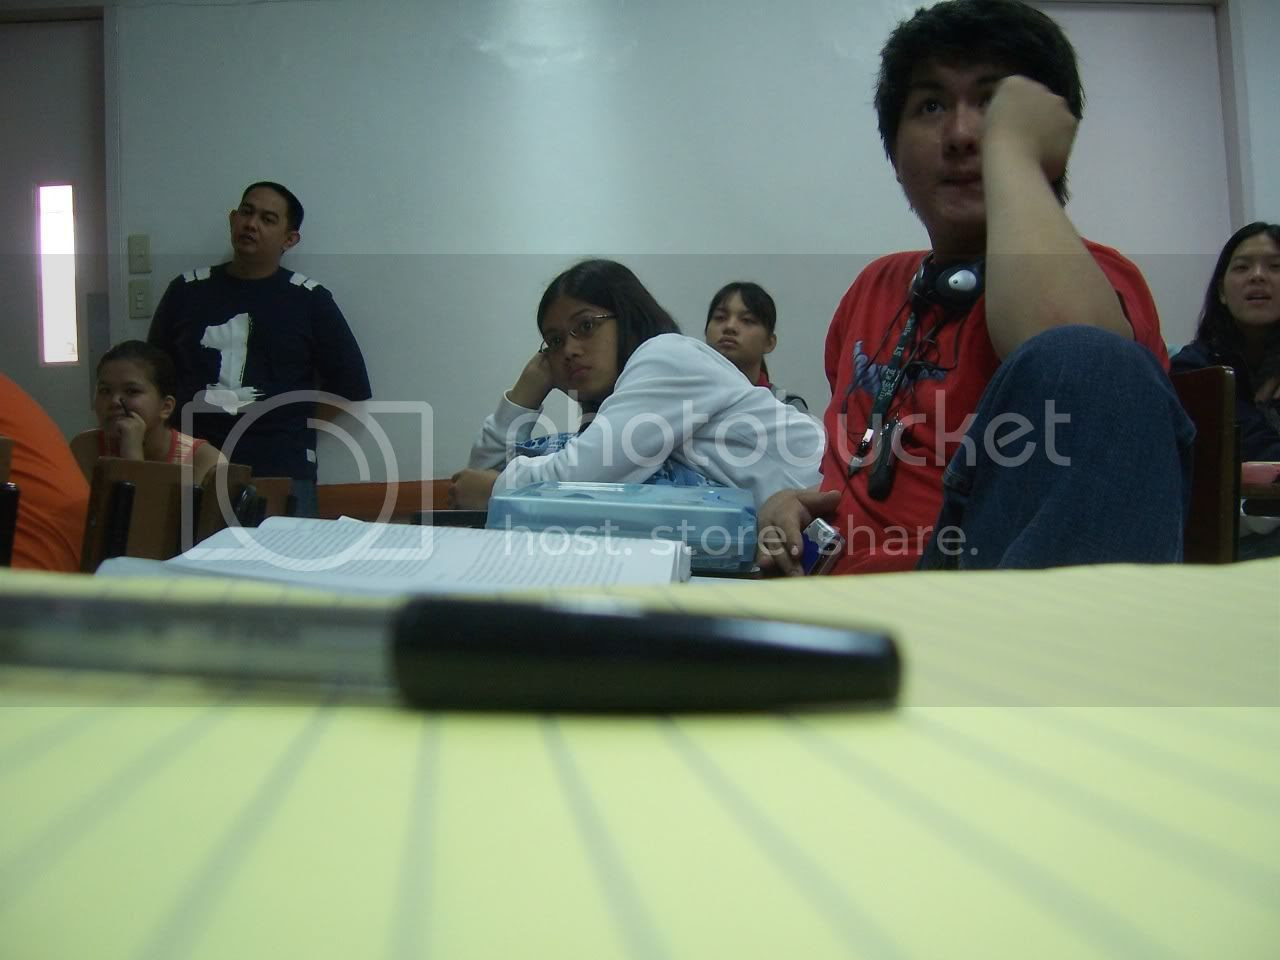 I intended this photo to be a really candid one, but it seems I got too obvious. I'd be lying if I still said this is candid. Look closely at Sars and Sir Marasigan. Image hosted by Photobucket